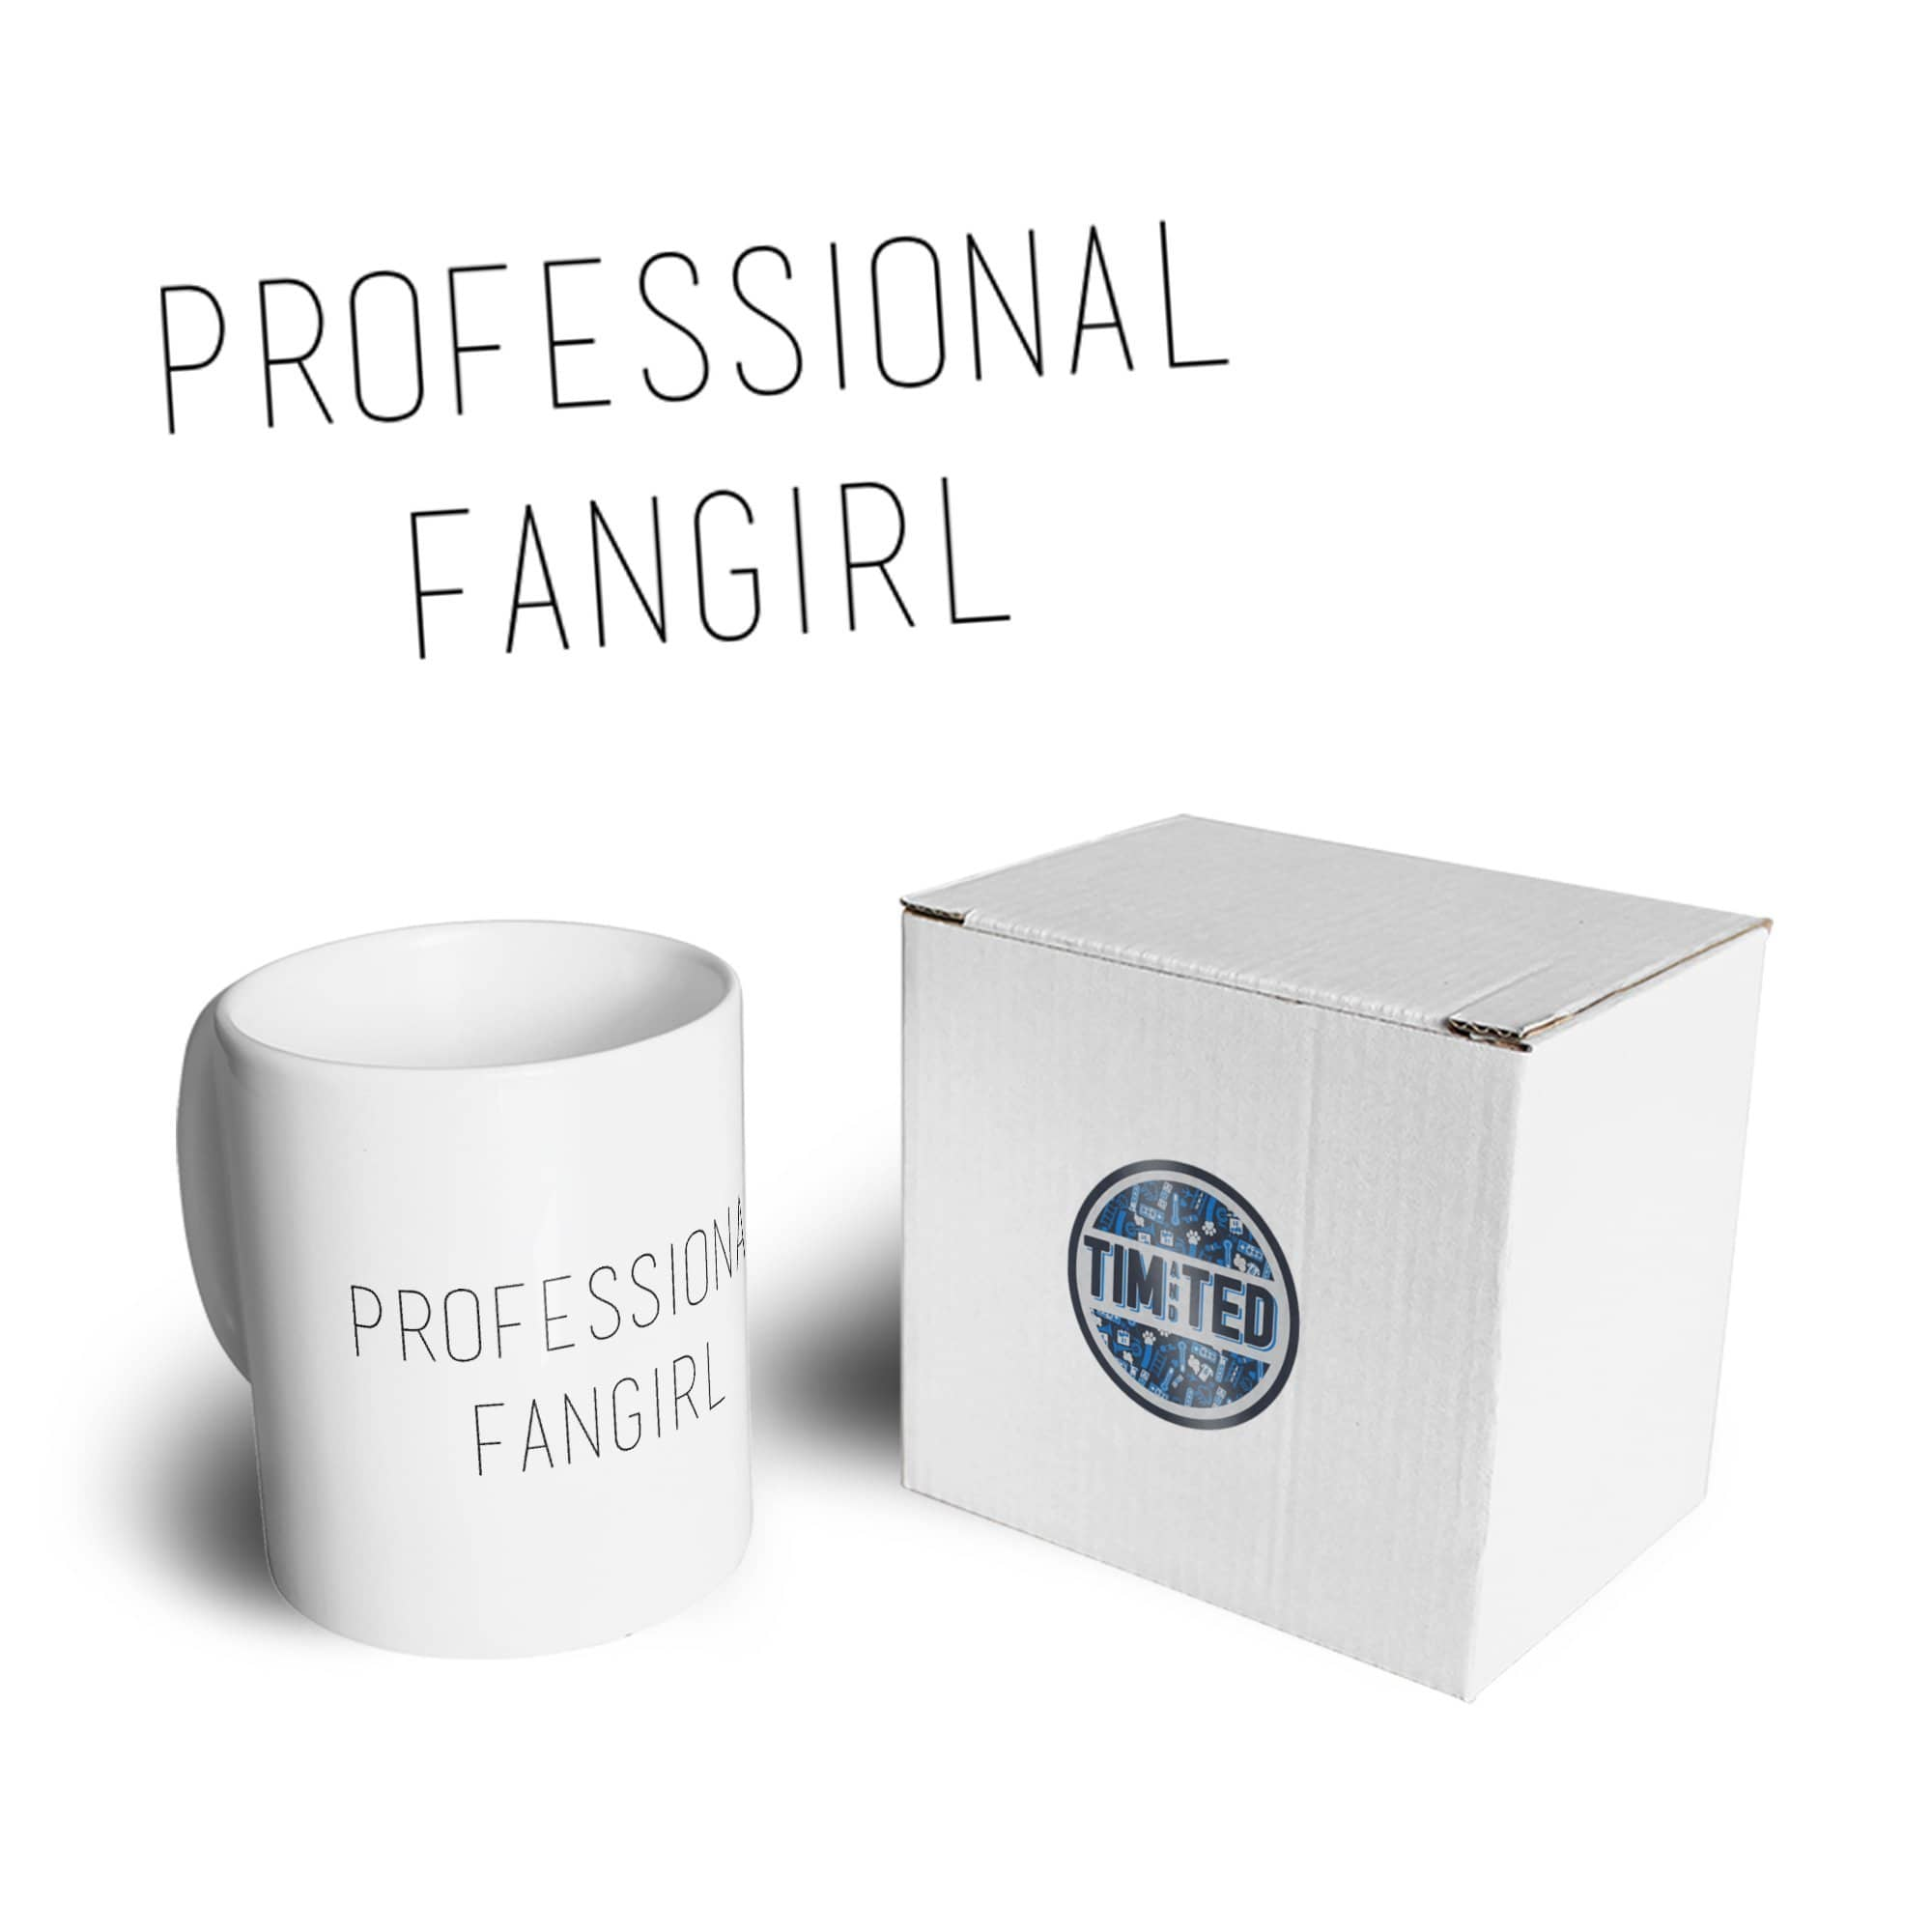 Novelty Joke Slogan Mug Professional Fangirl Coffee Tea Cup